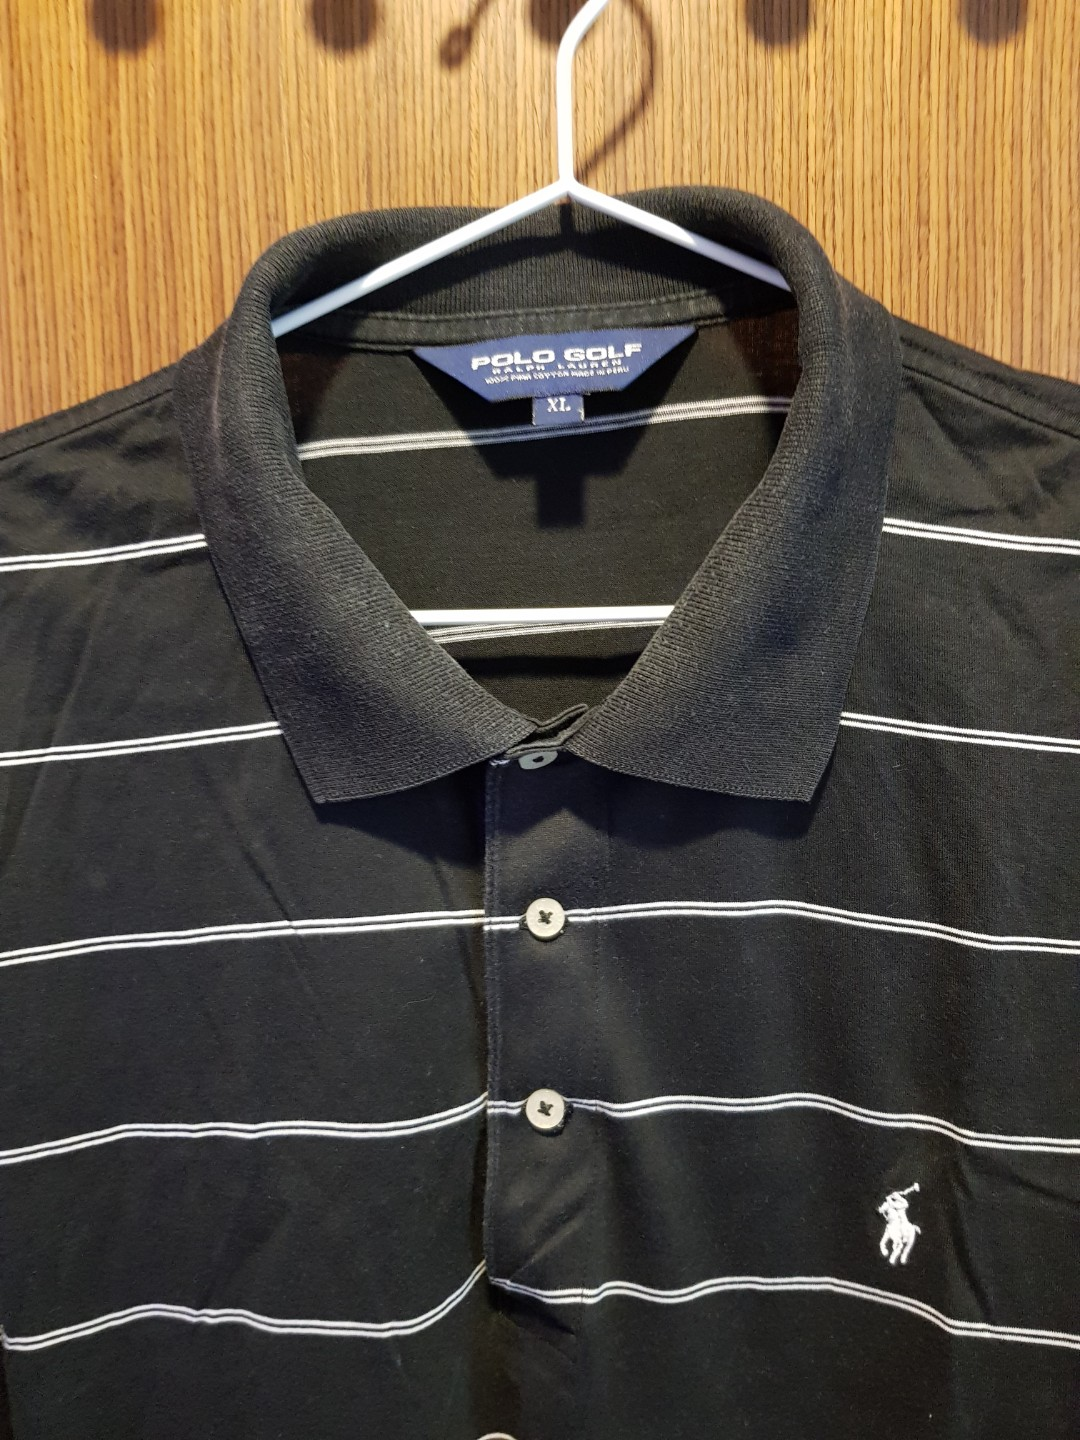 65644ee3 Preowned Polo Ralph Lauren Short Sleeve polo shirt For Sale, Men's Fashion,  Clothes, Tops on Carousell